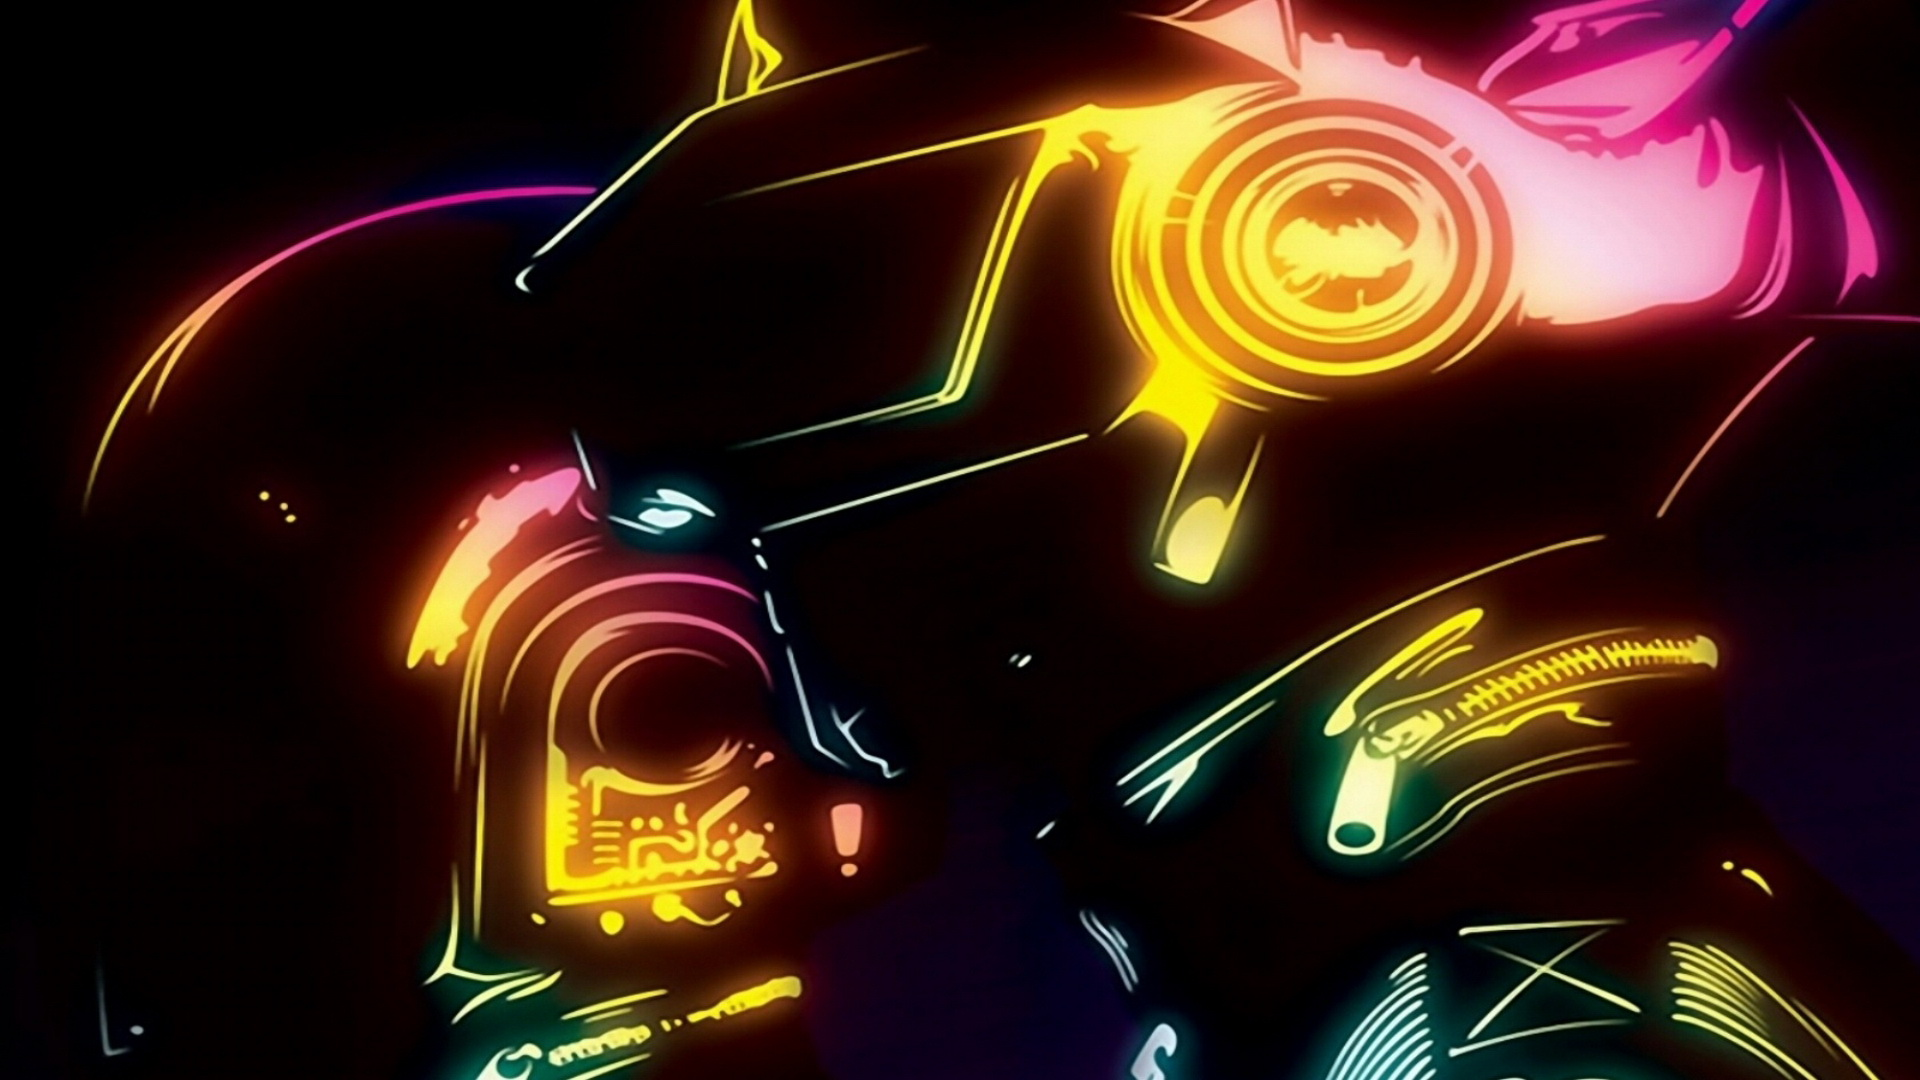 Daft punk wallpapers high quality download free - Wallpapers punk ...